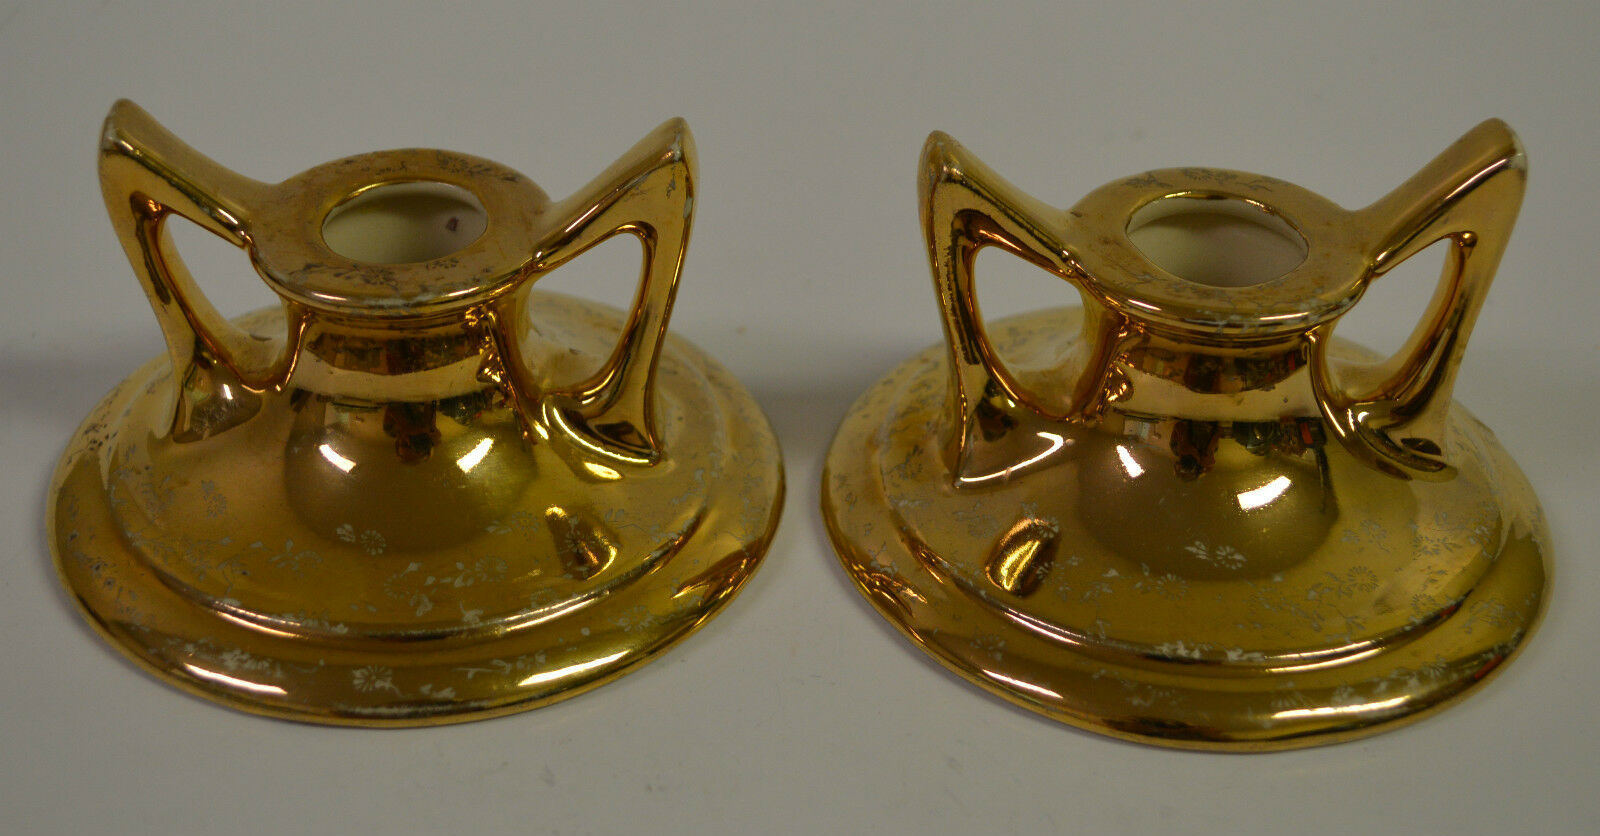 Candle Holder Pair gold with Flowers